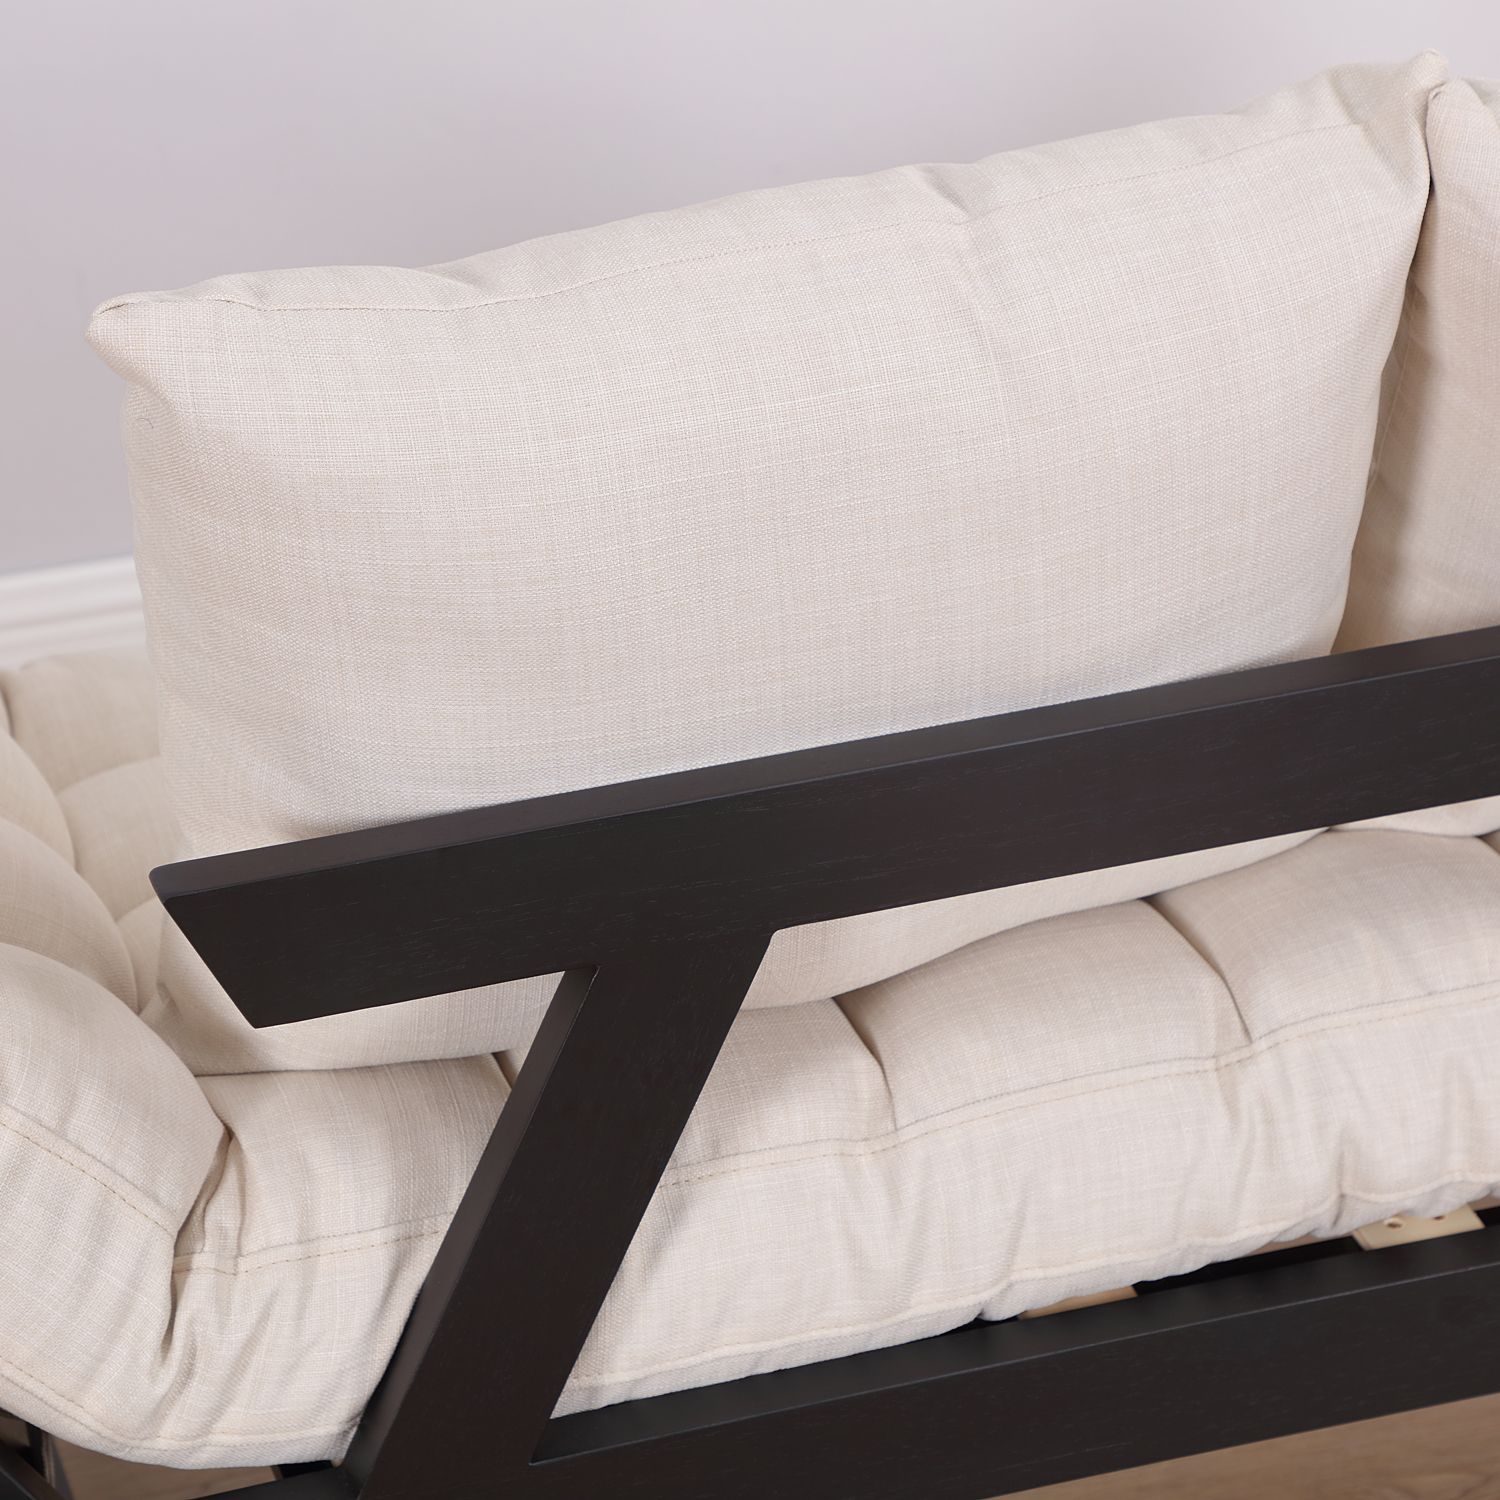 Convertible-Sofa-Bed-Sleeper-Couch-Chaise-Lounge-Chair-Adjustable-Padded-Pillow thumbnail 10